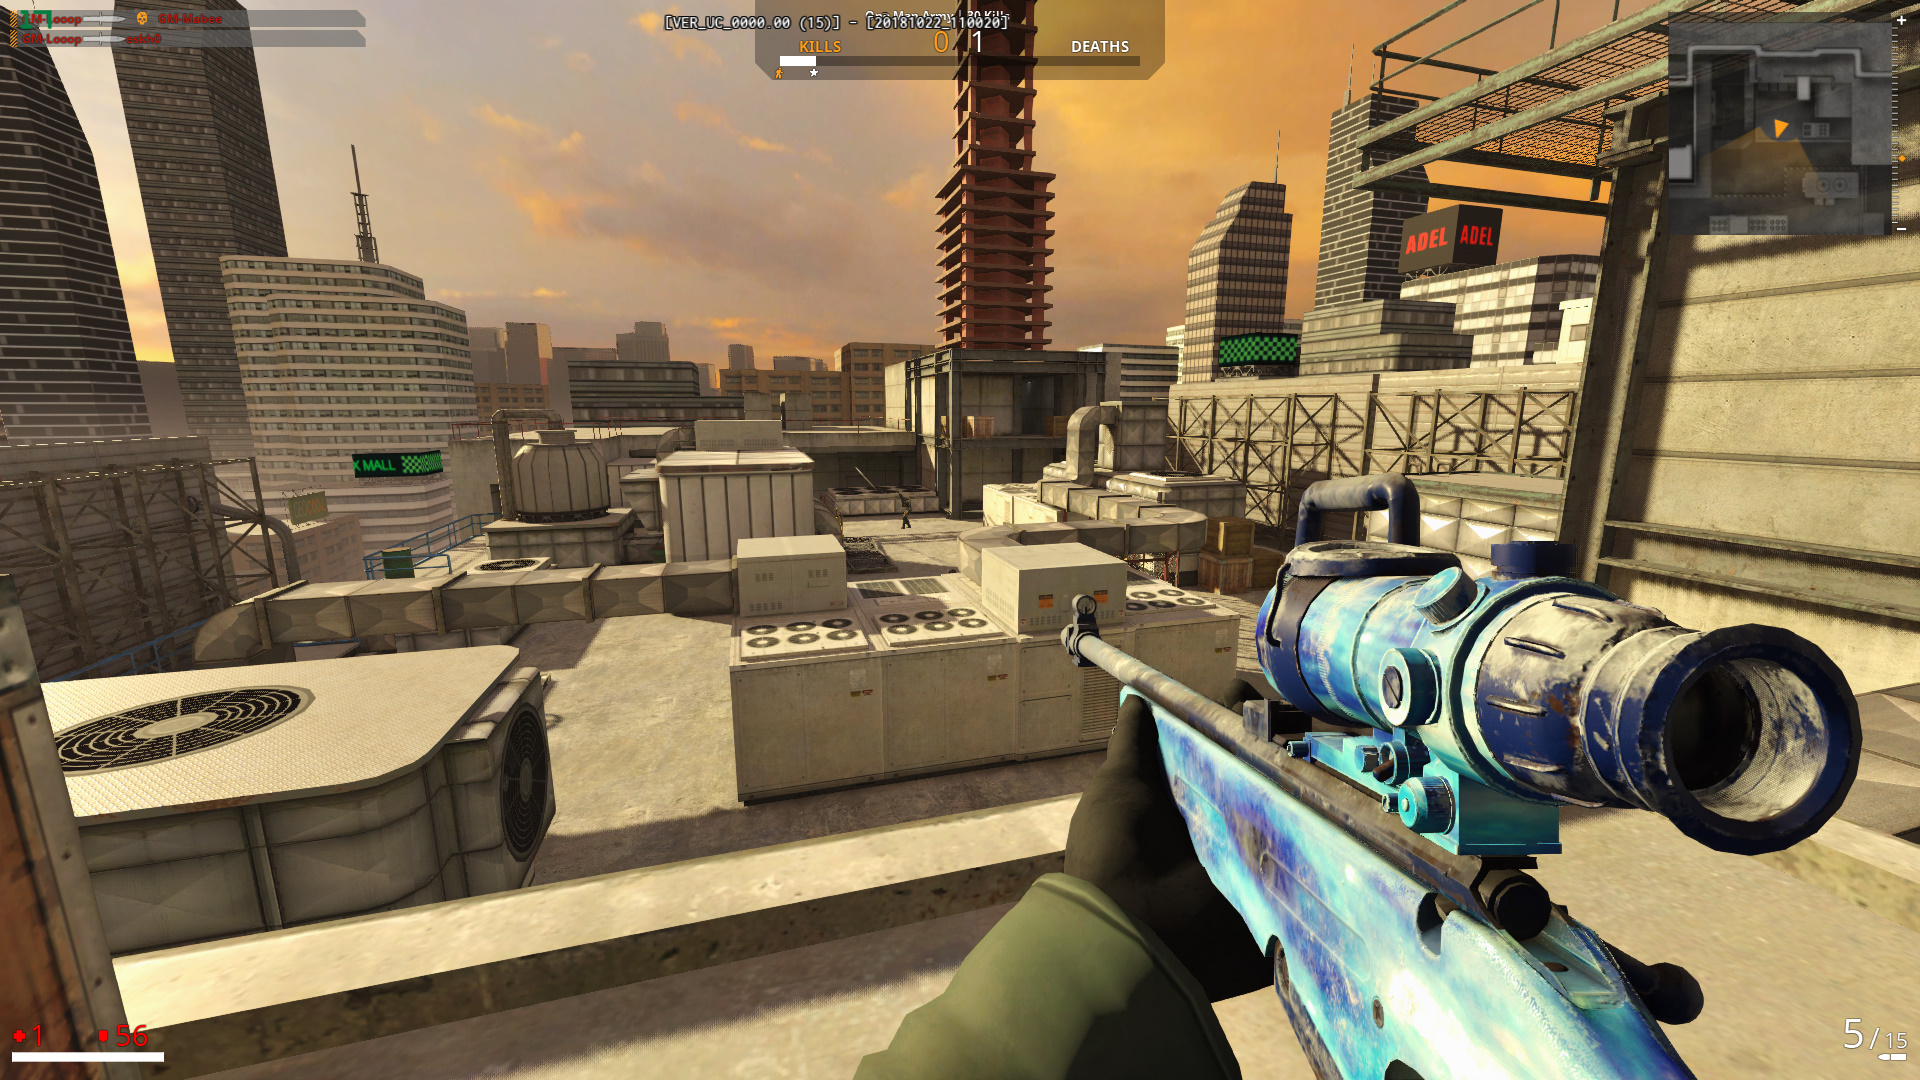 combat arms on steam